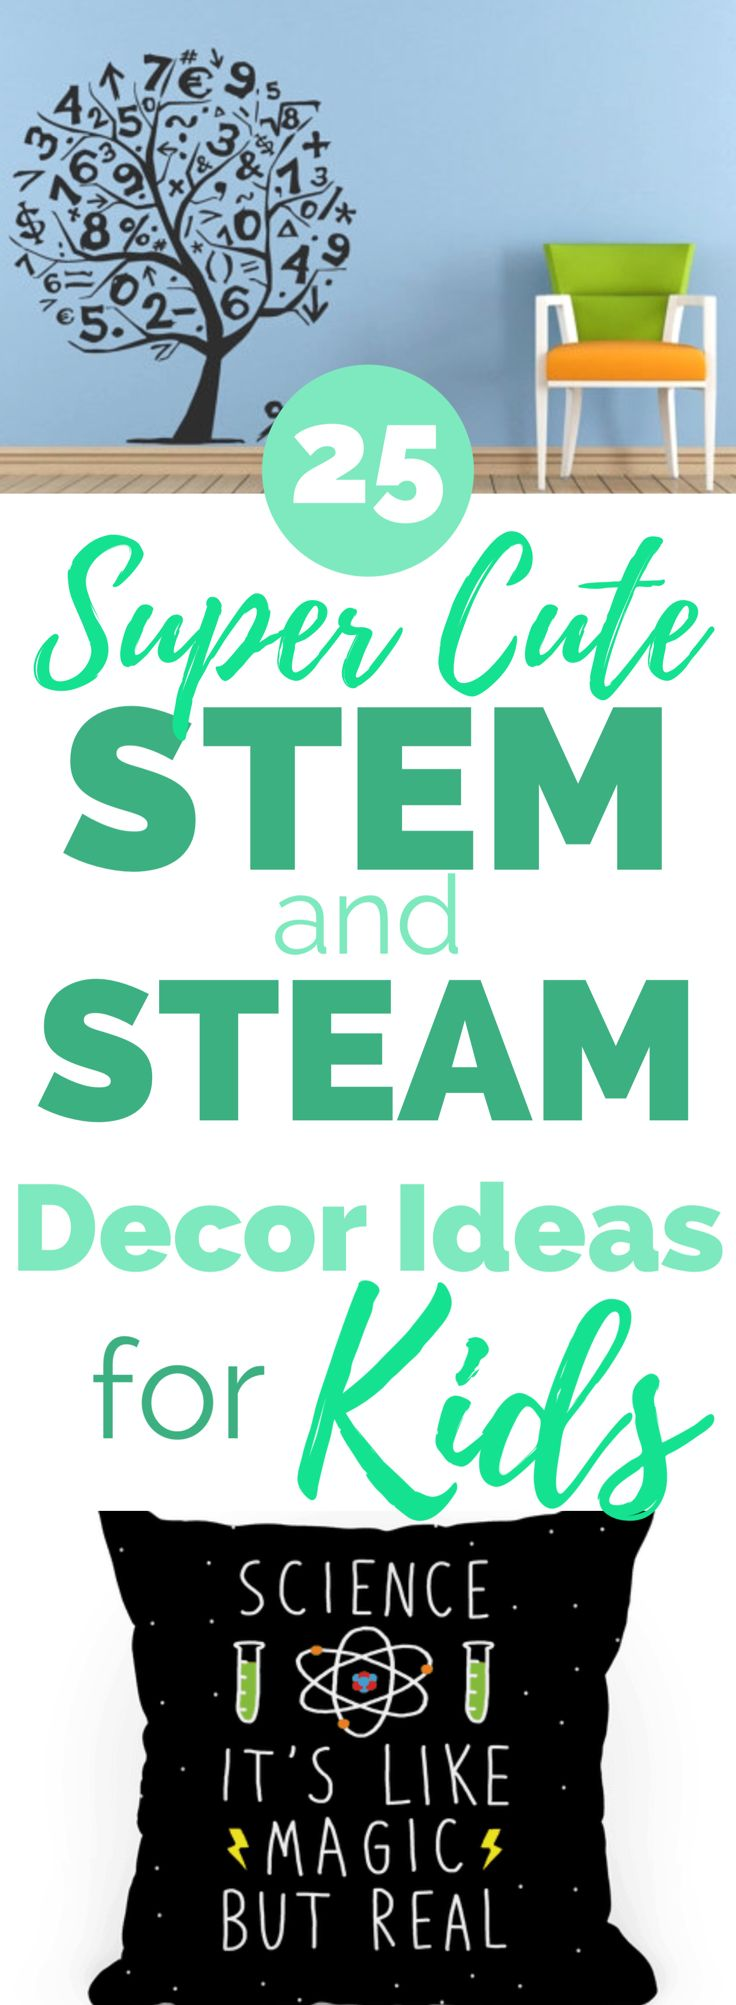 STEM and STEAM Room Decor for Kids and Toddlers | If your little one is into Science, Technology, Engineering, Art, or Math, these cute room decor pieces are for you! They also make great STEM gift ideas for young kids and toddlers, and many can actually work in STEM nursery, too!